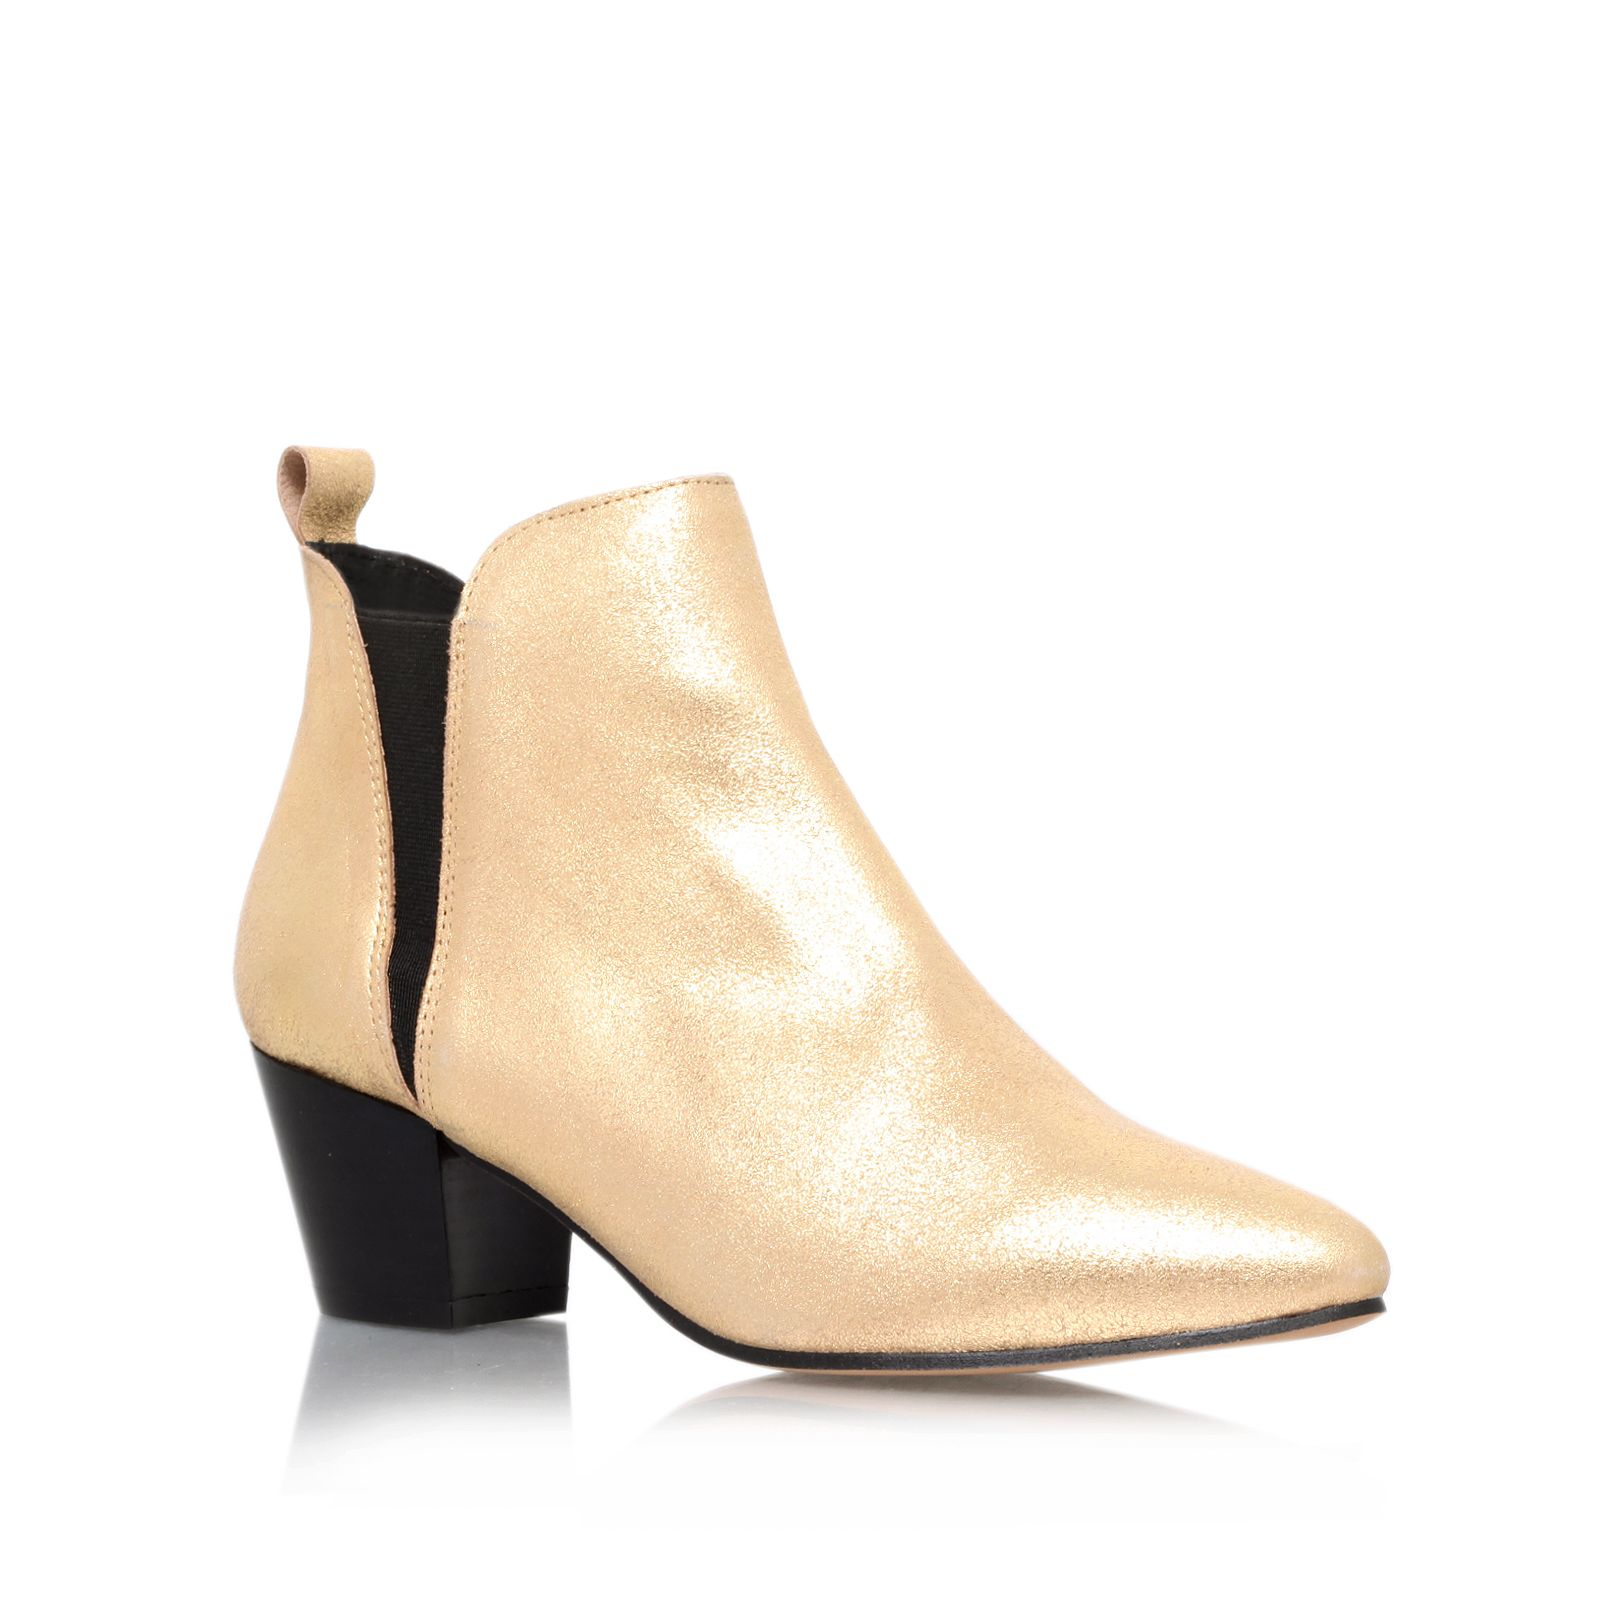 Saffron leather almond toe block heel ankle boots